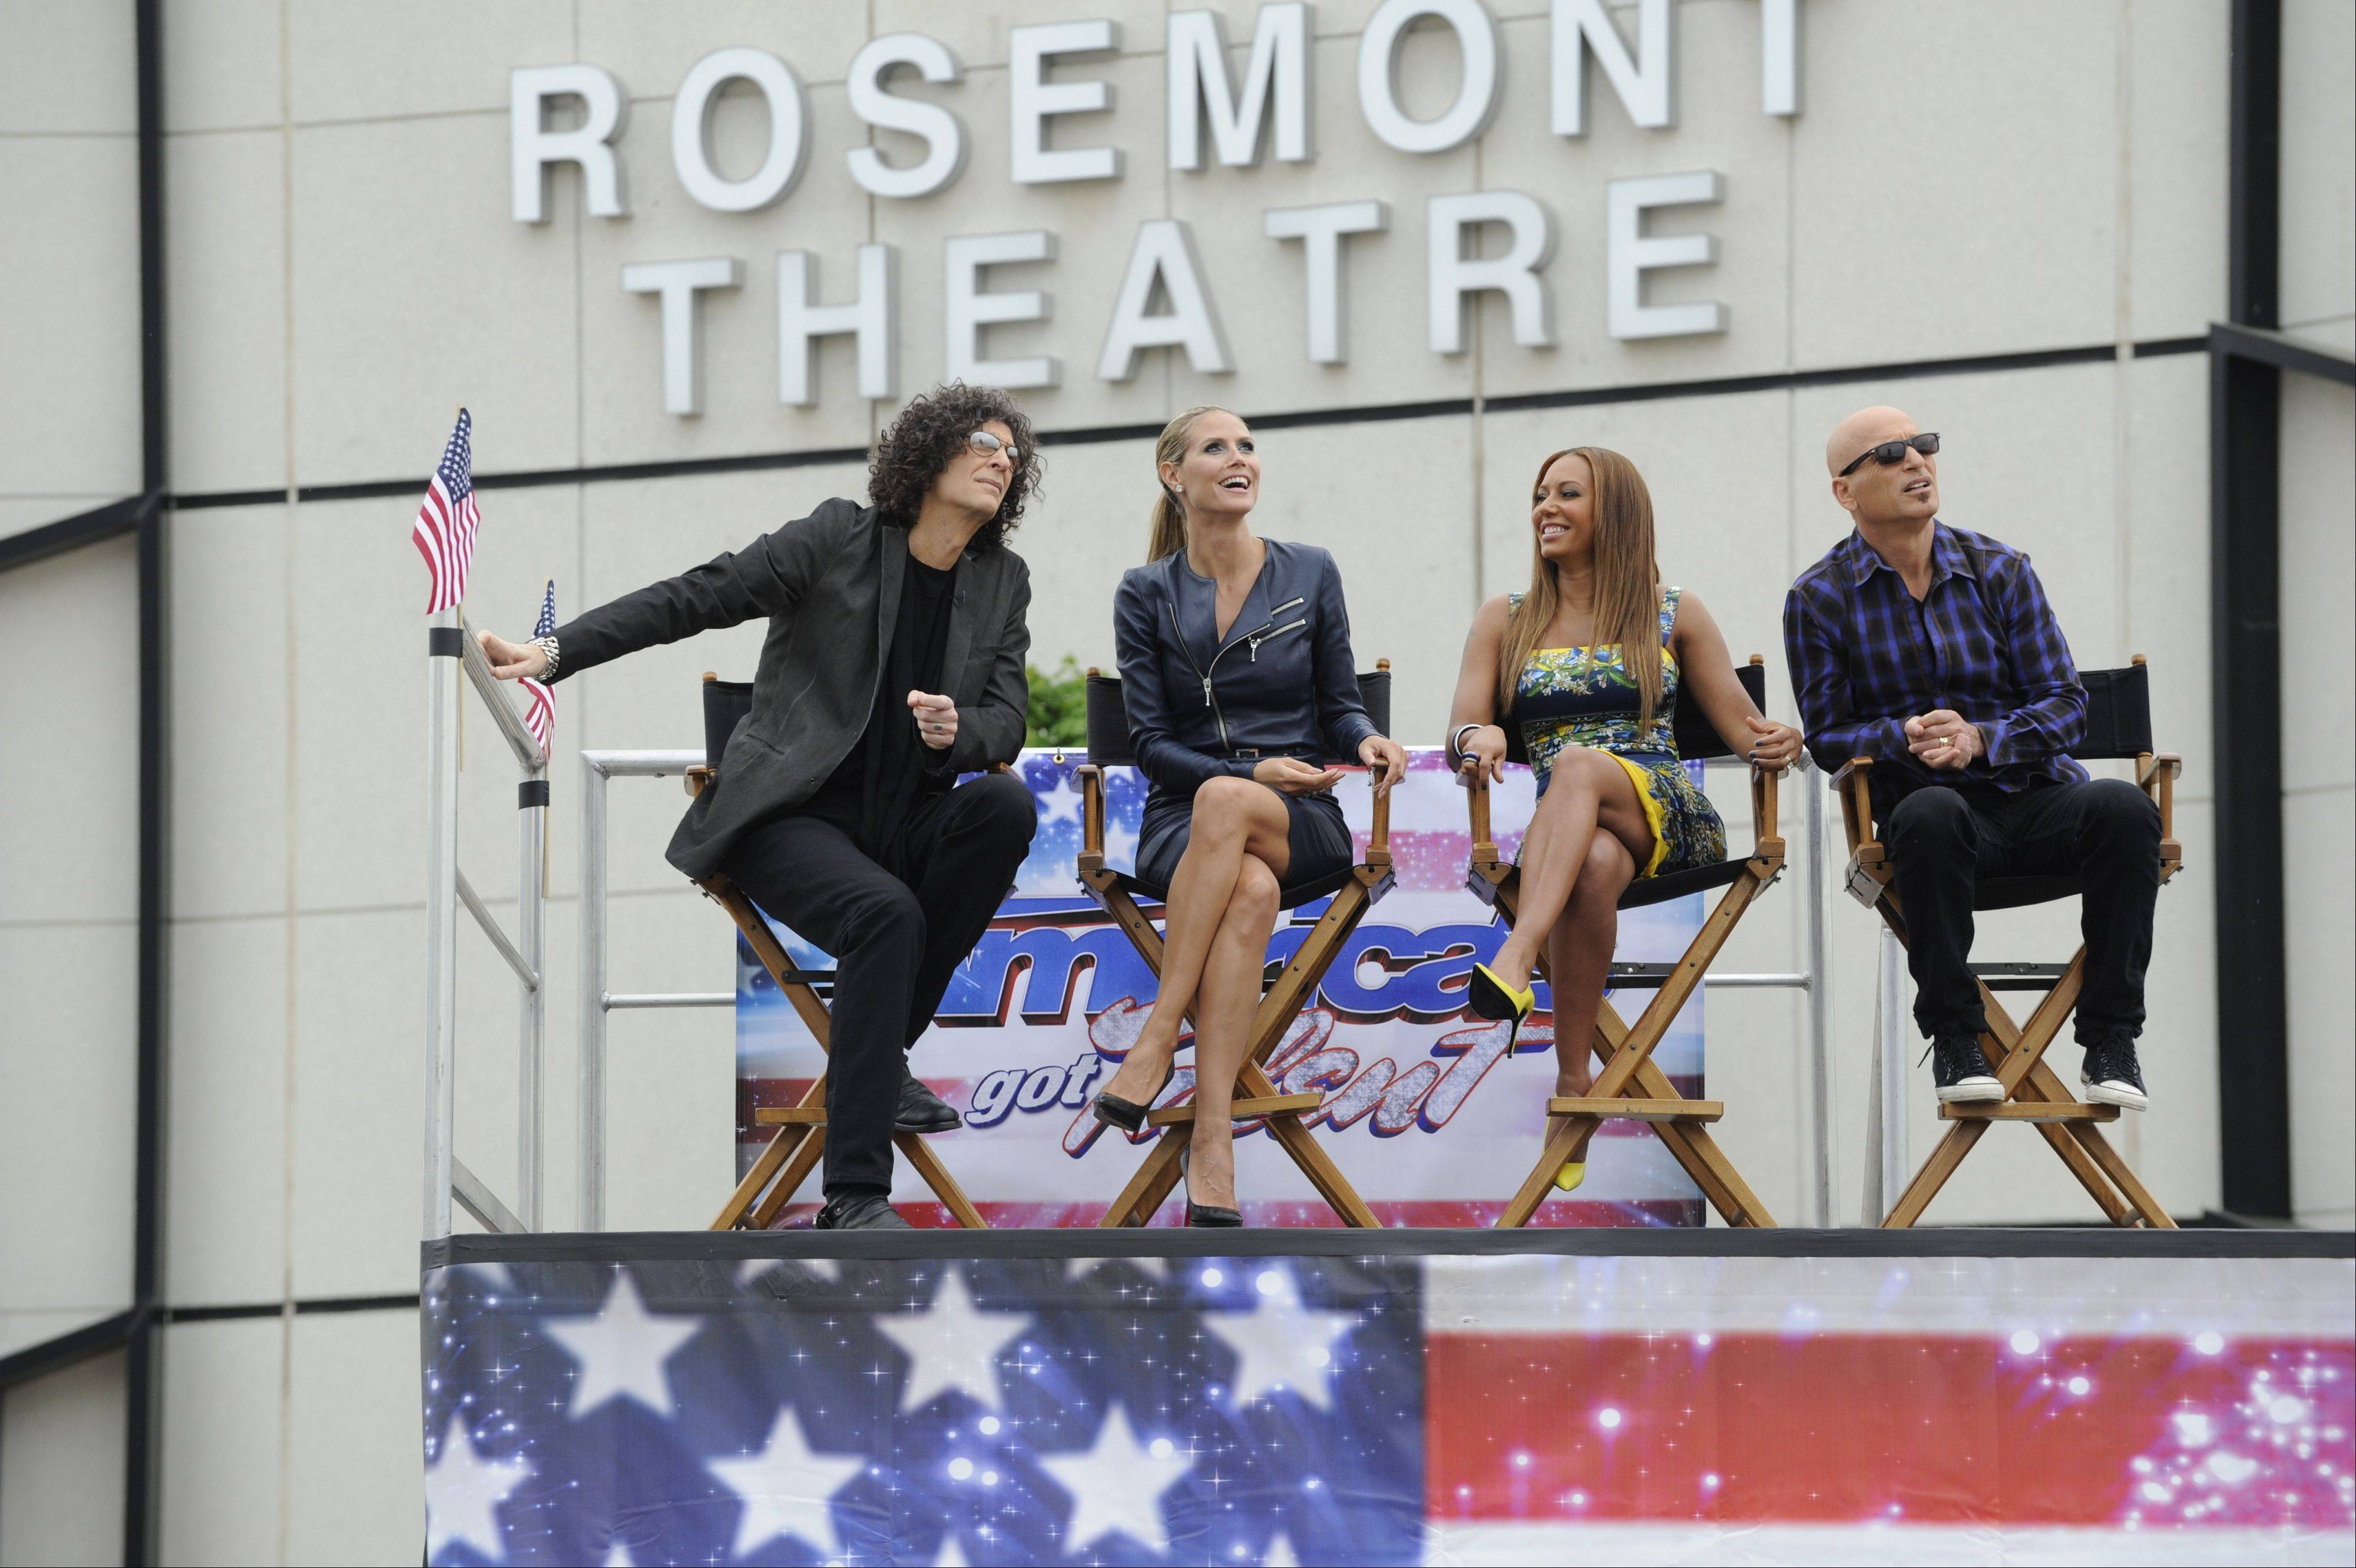 """America's Got Talent"" judges — Howard Stern, left, Heidi Klum, Mel B and Howie Mandel — taped for three days at the Rosemont Theatre in May. The episode featuring their time here airs at 8 p.m. Tuesday on NBC."